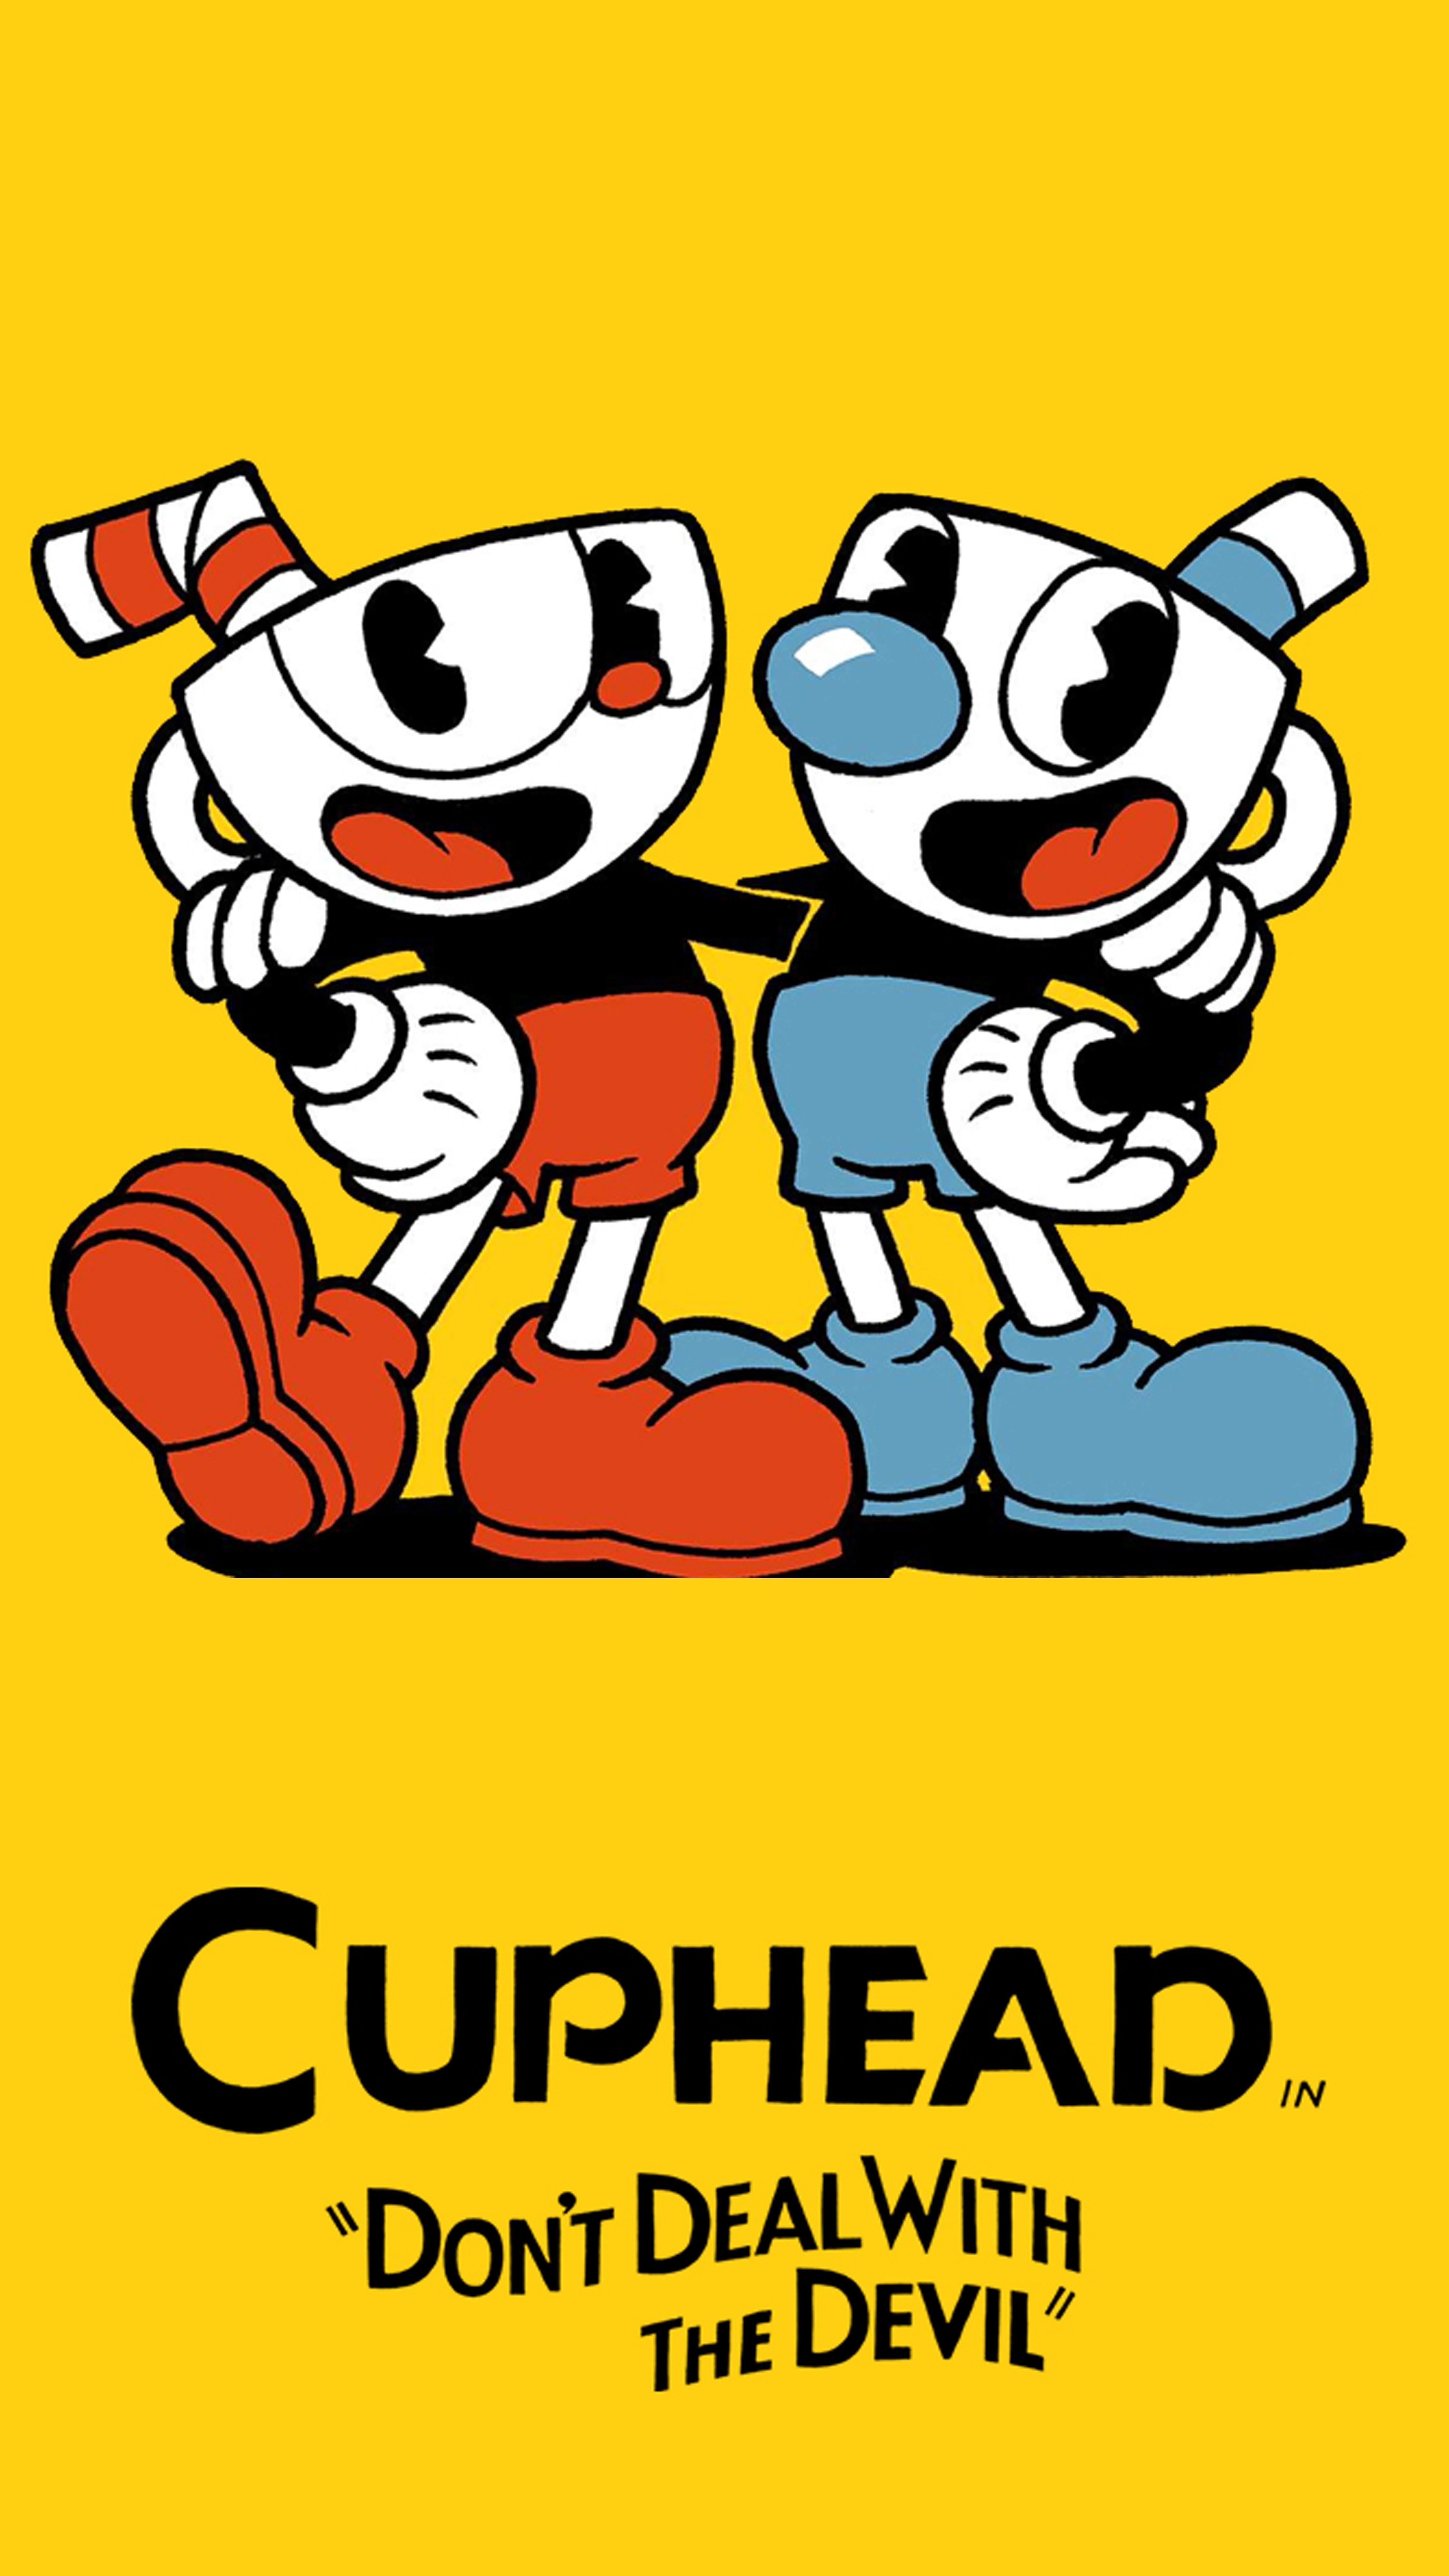 Inspirational Cuphead Phone Wallpaper In 2020 Cuphead Game Wall